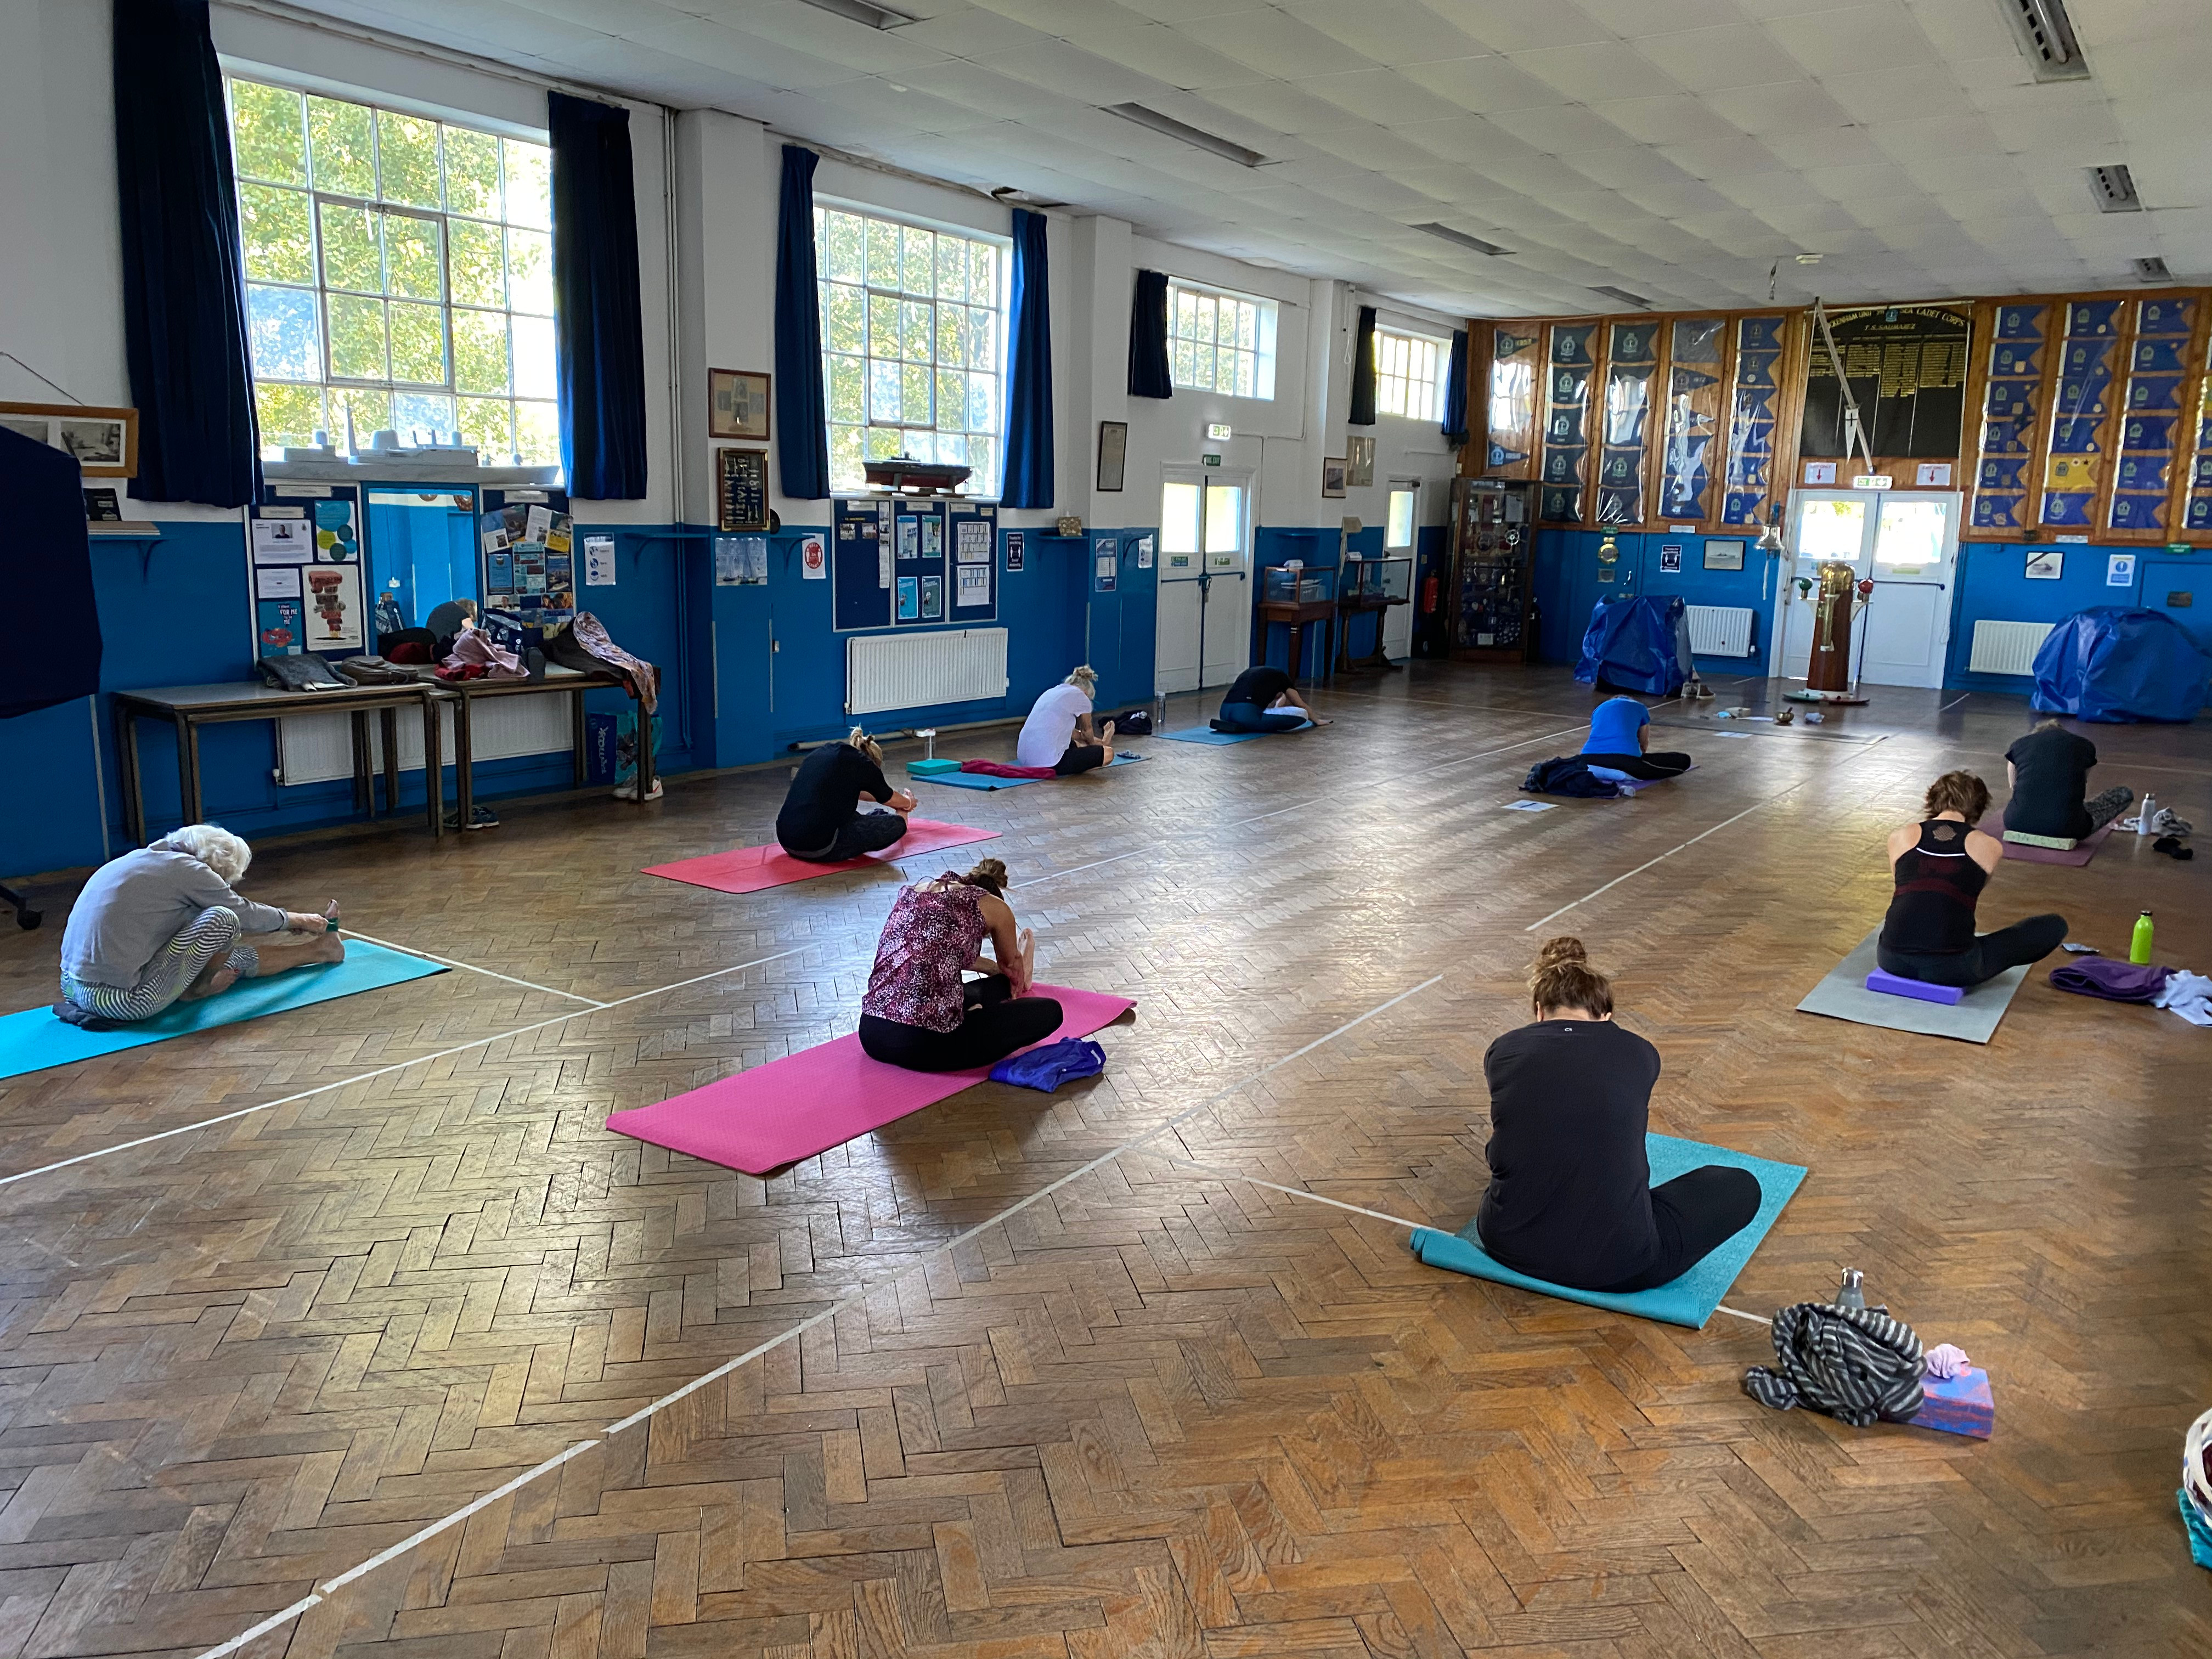 Monday Yoga in the Hall 9.30-10.45am